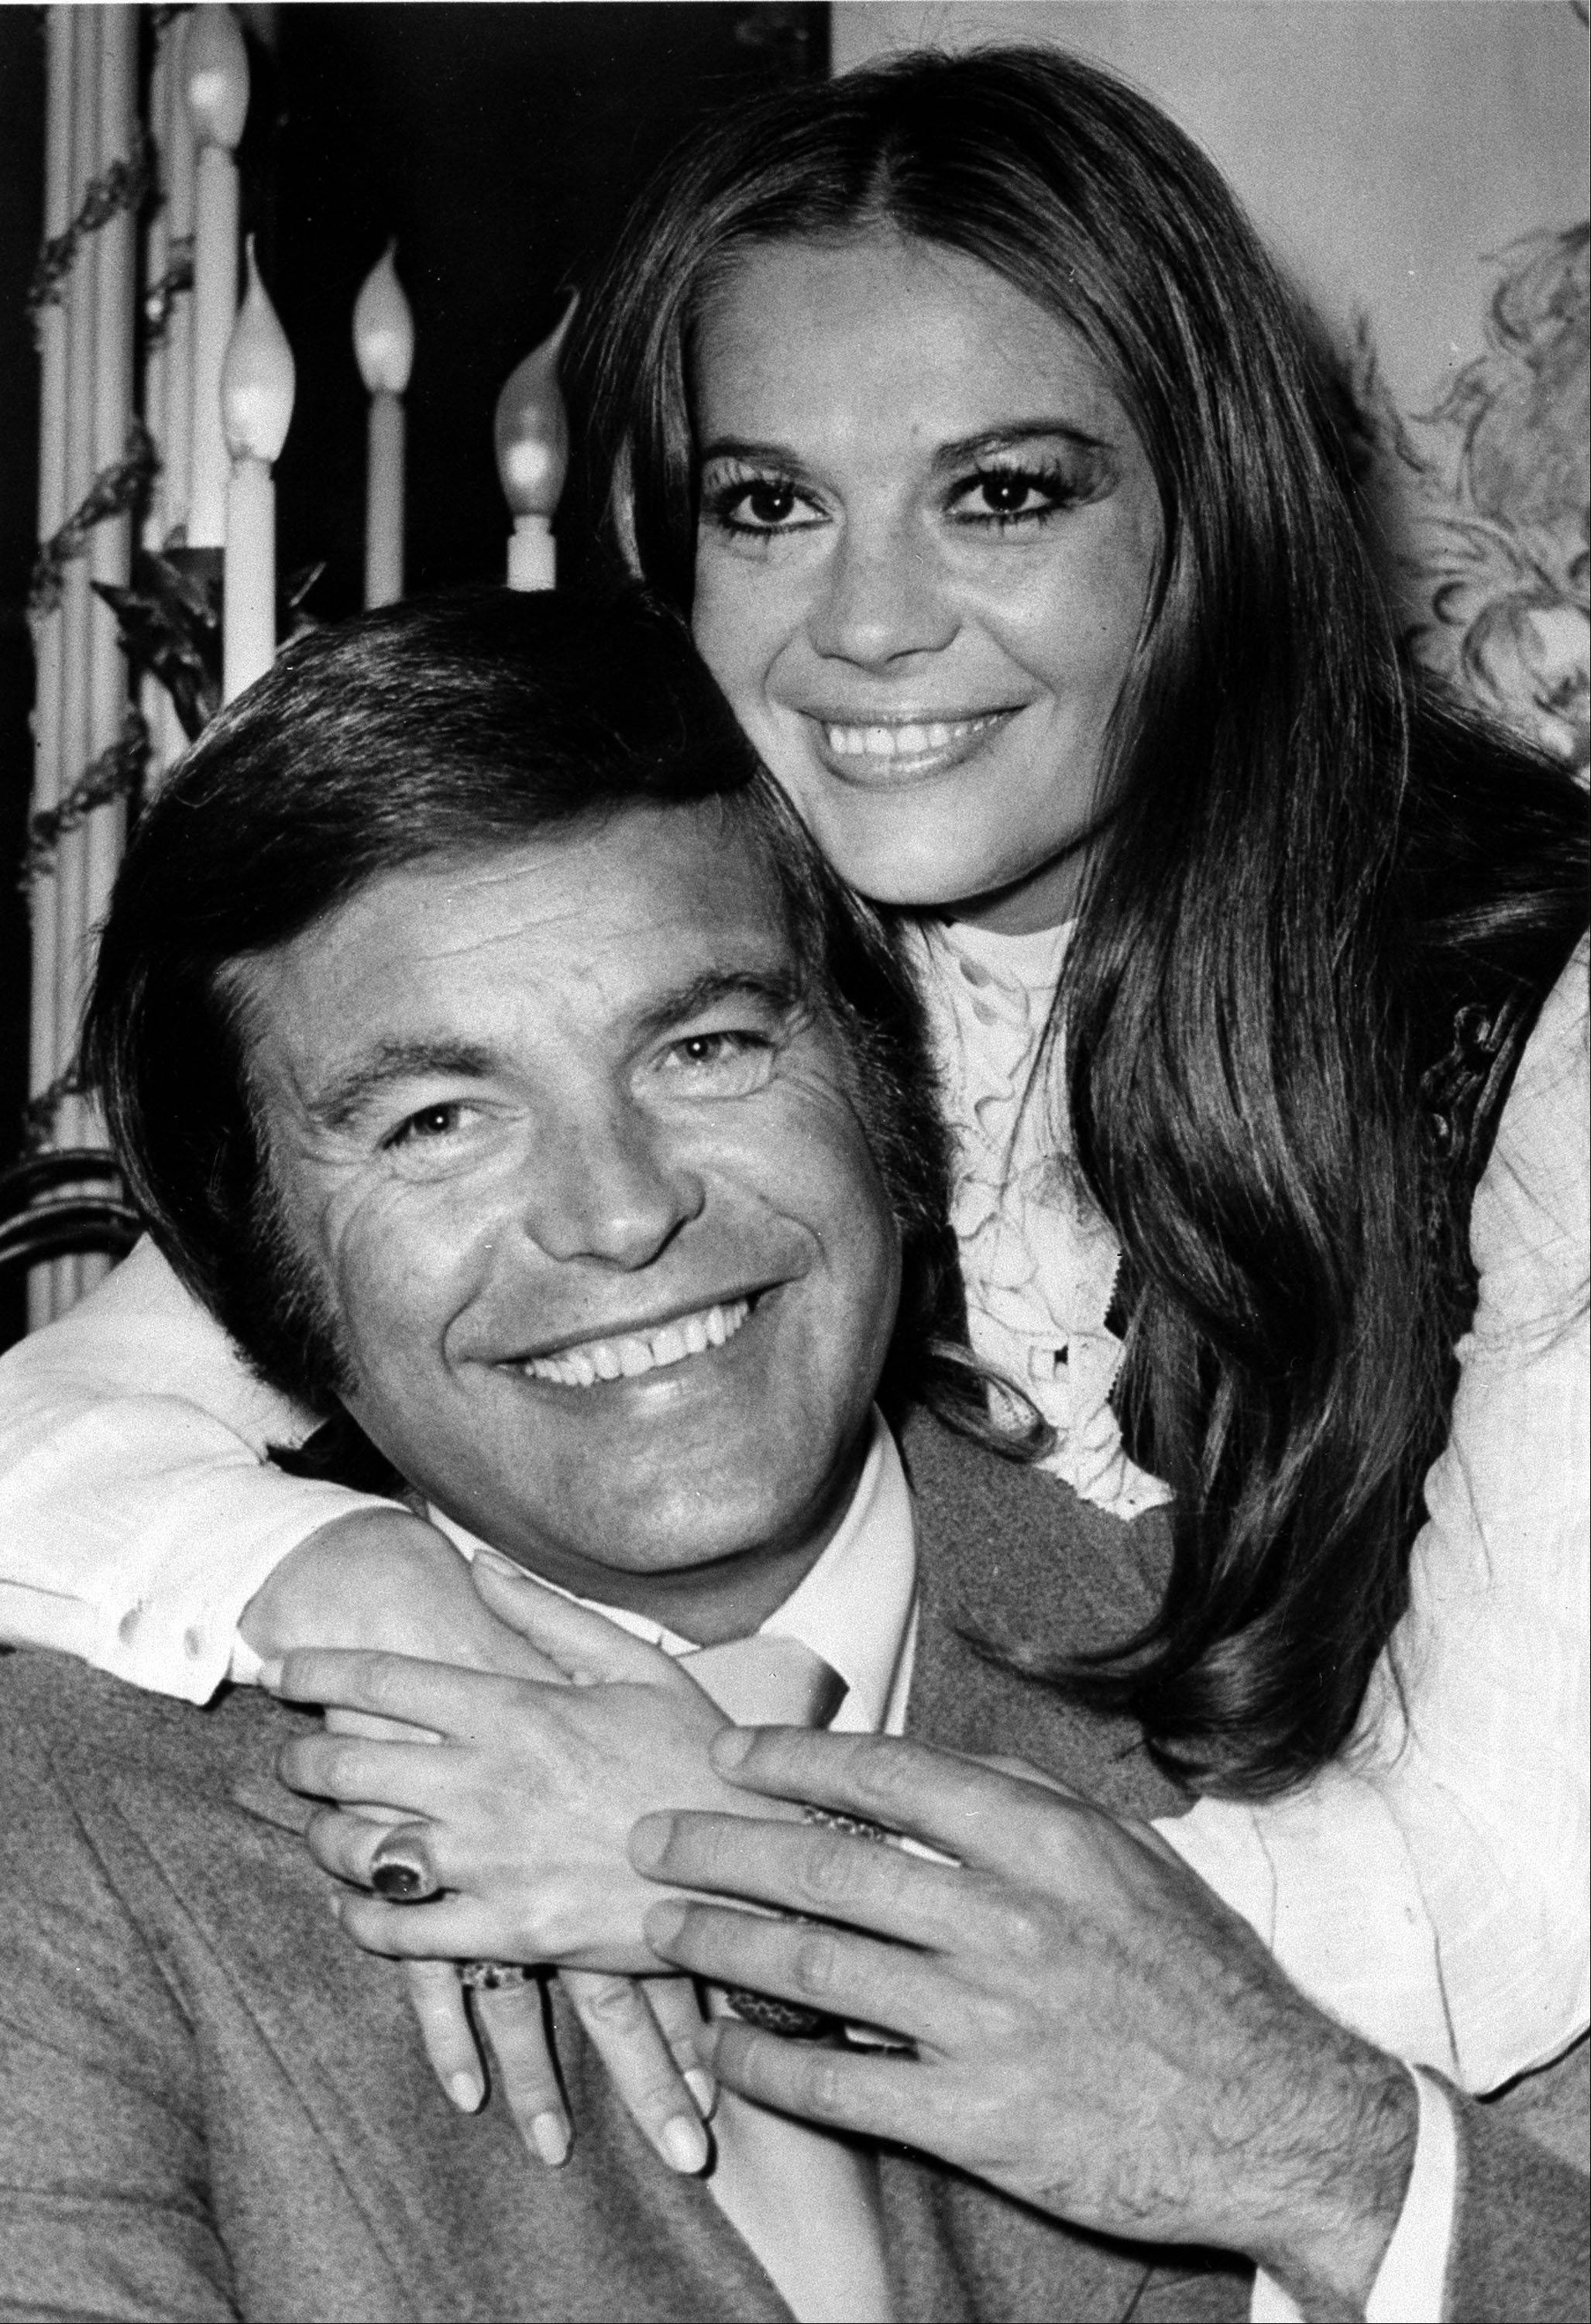 In this April 23, 1972 file photo, actor Robert Wagner and actress Natalie Wood pose at the Dorchester Hotel in London. Los Angeles sheriff's homicide detectives are taking another look at Wood's 1981 drowning death based on new information, officials announced Thursday, Nov. 17, 2011. A yacht captain said on national TV Friday, Nov. 18, 2011, that he lied to investigators about Natalie Wood's mysterious death 30 years ago and blames Wagner for her drowning in the ocean off Southern California.